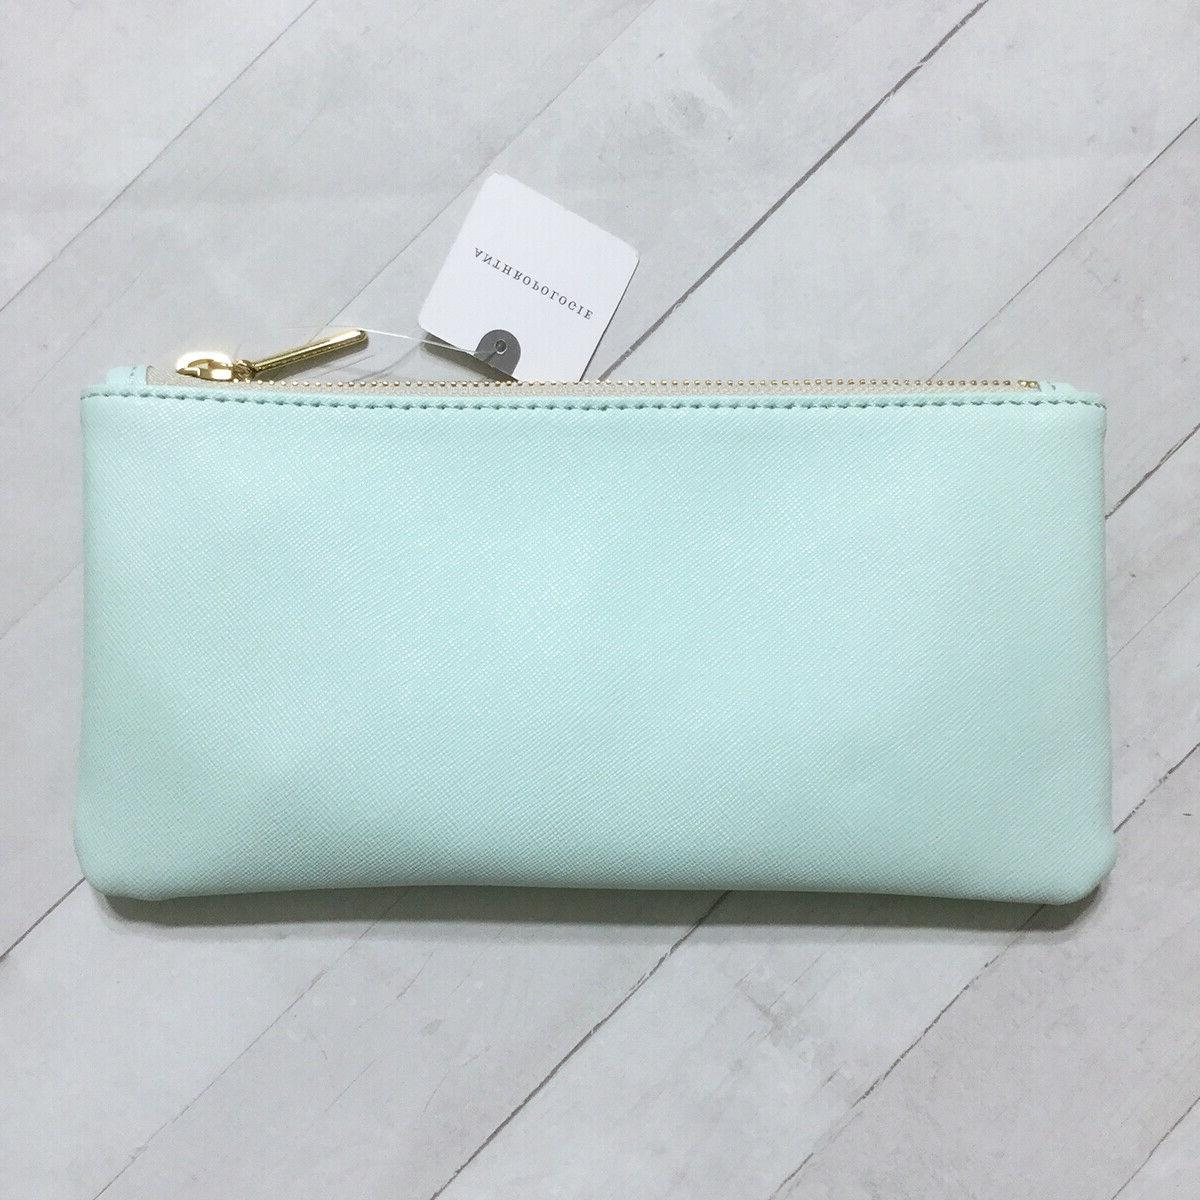 Anthropologie Pencil Cosmetic Sea Green Gold Faux Leather